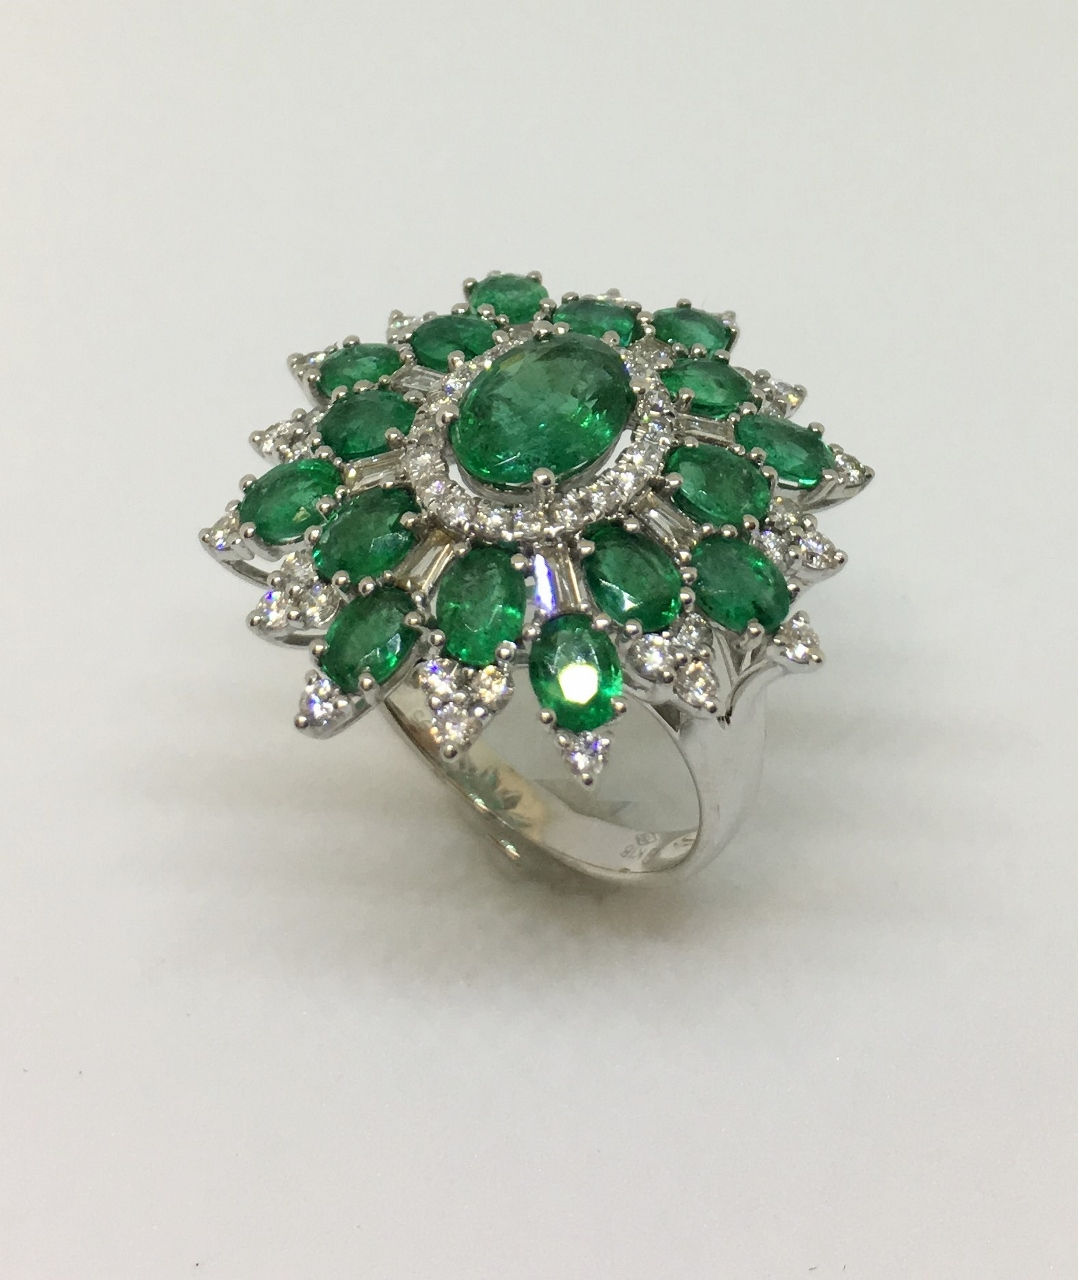 3.5 Carats Total Weight Emerald & Diamond Ring